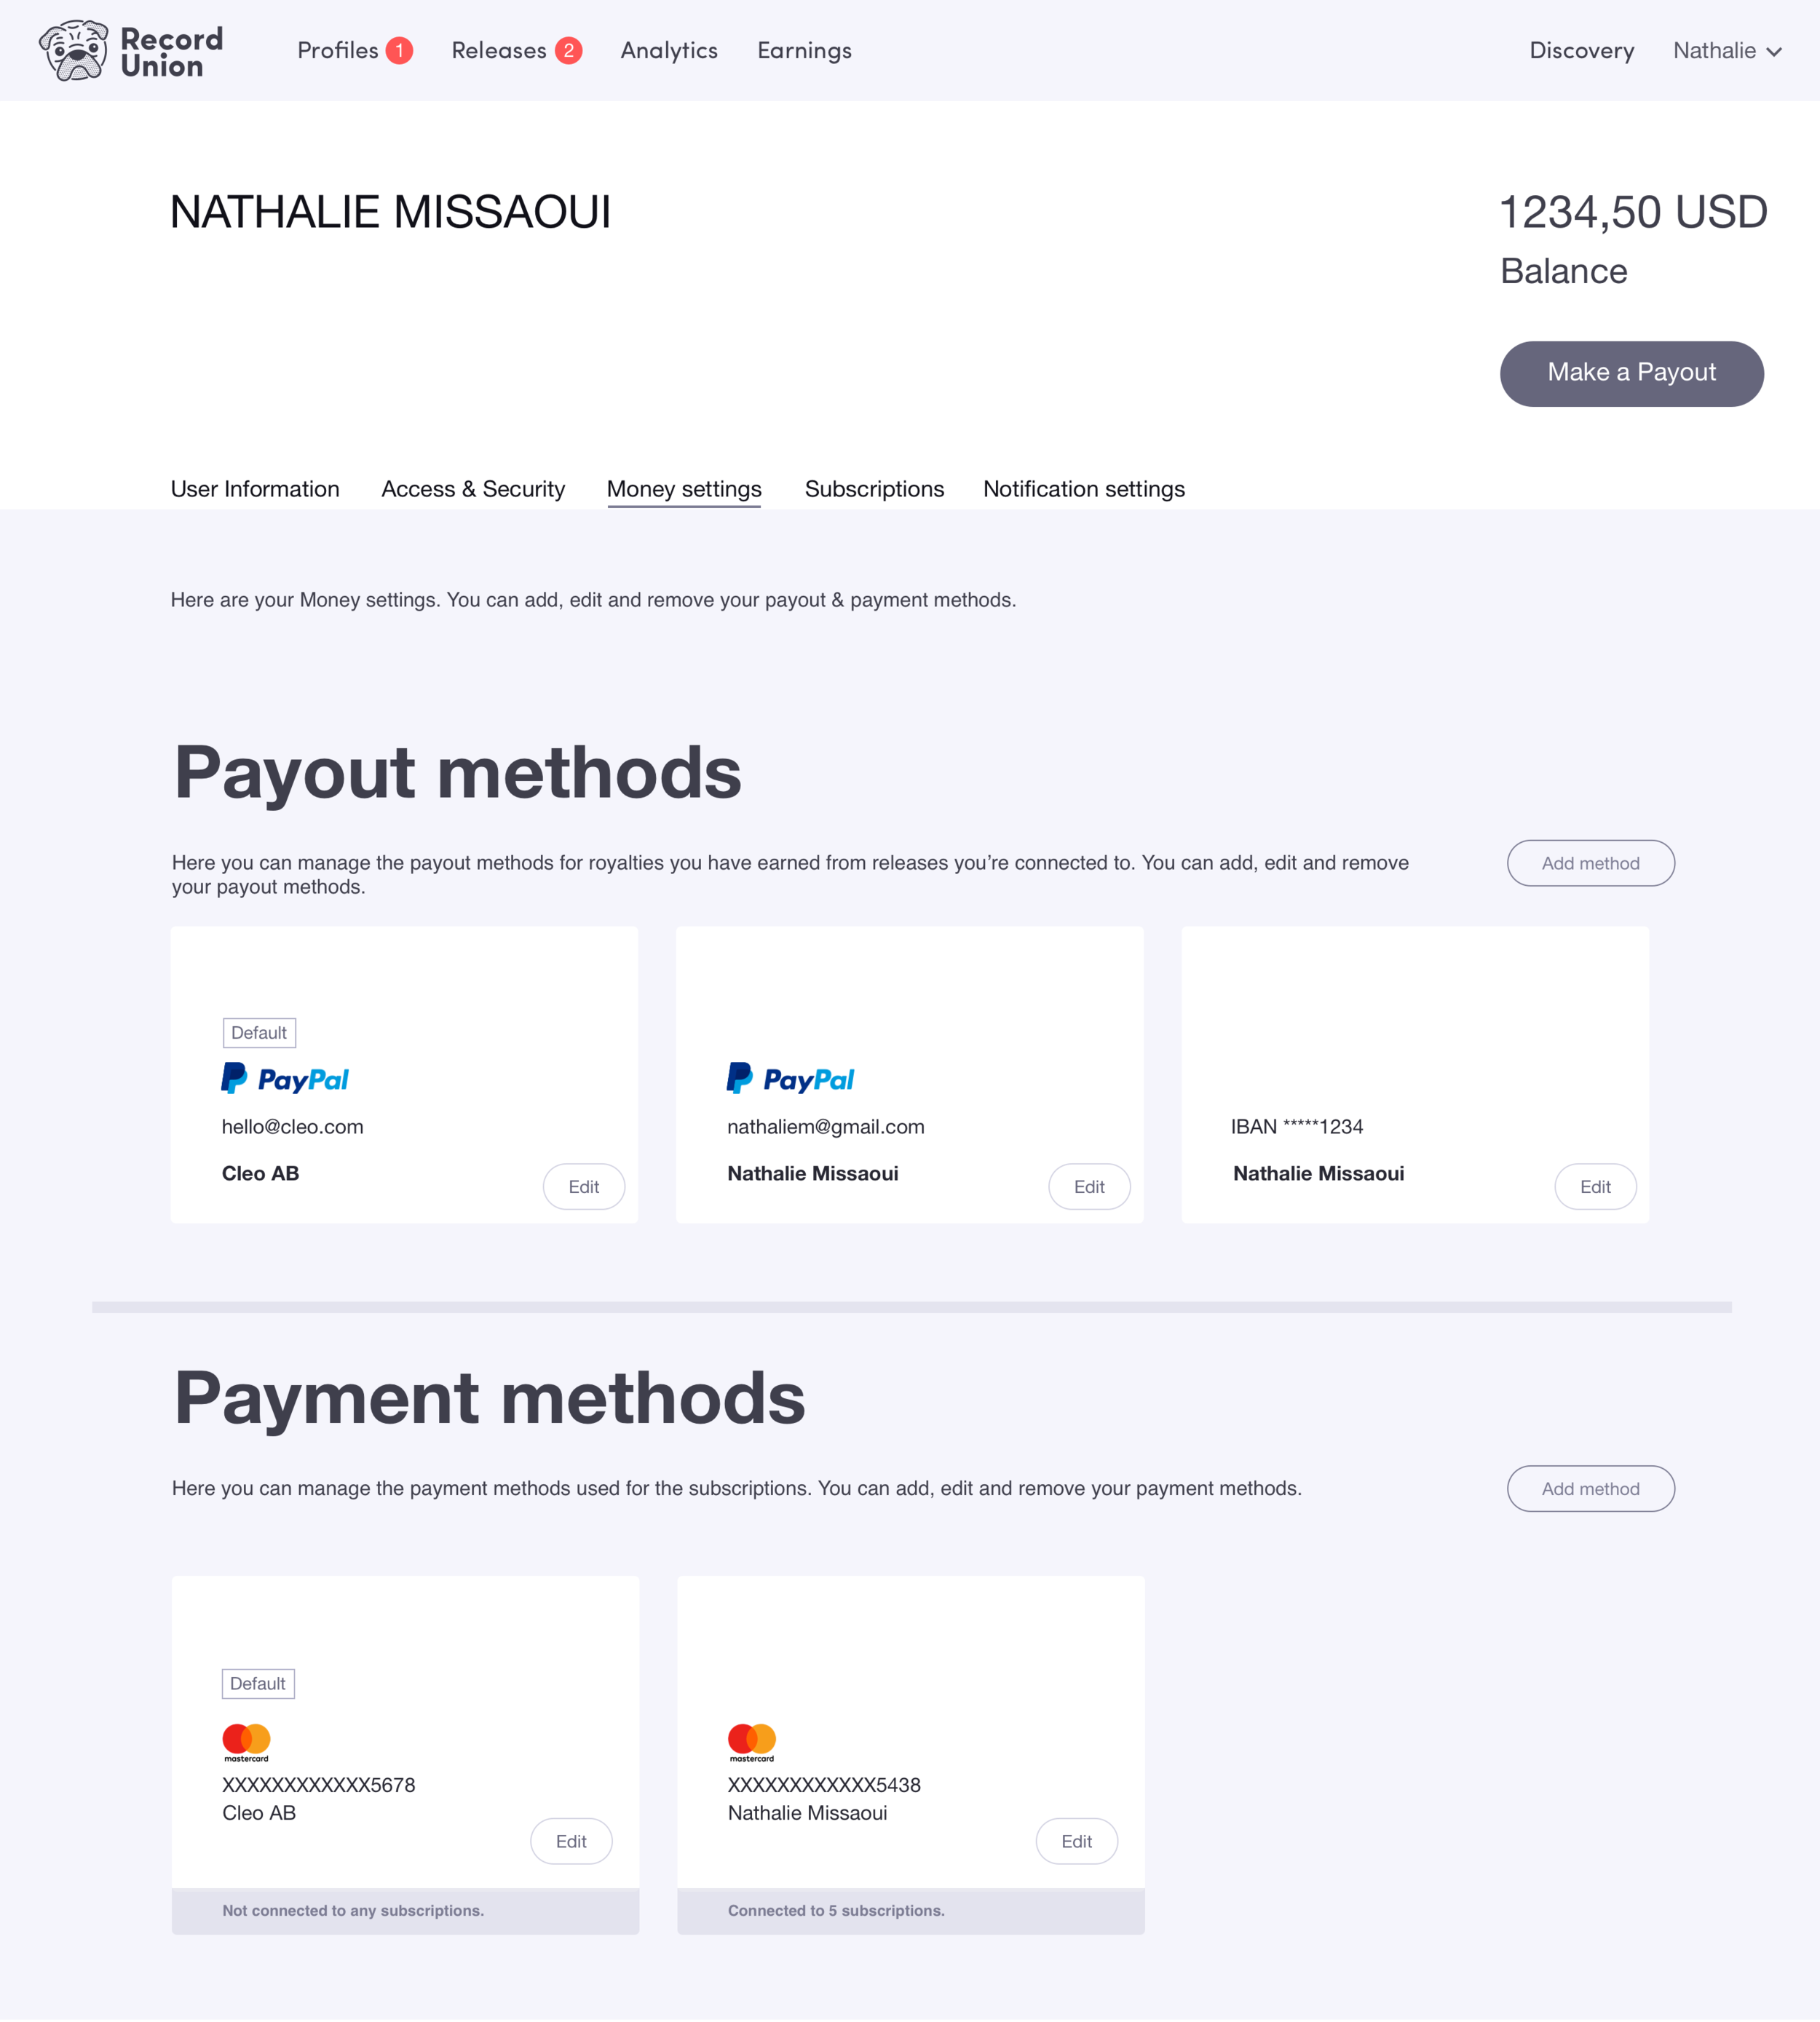 Click the image to open InVision prototype for user journey: Edit Payout Method